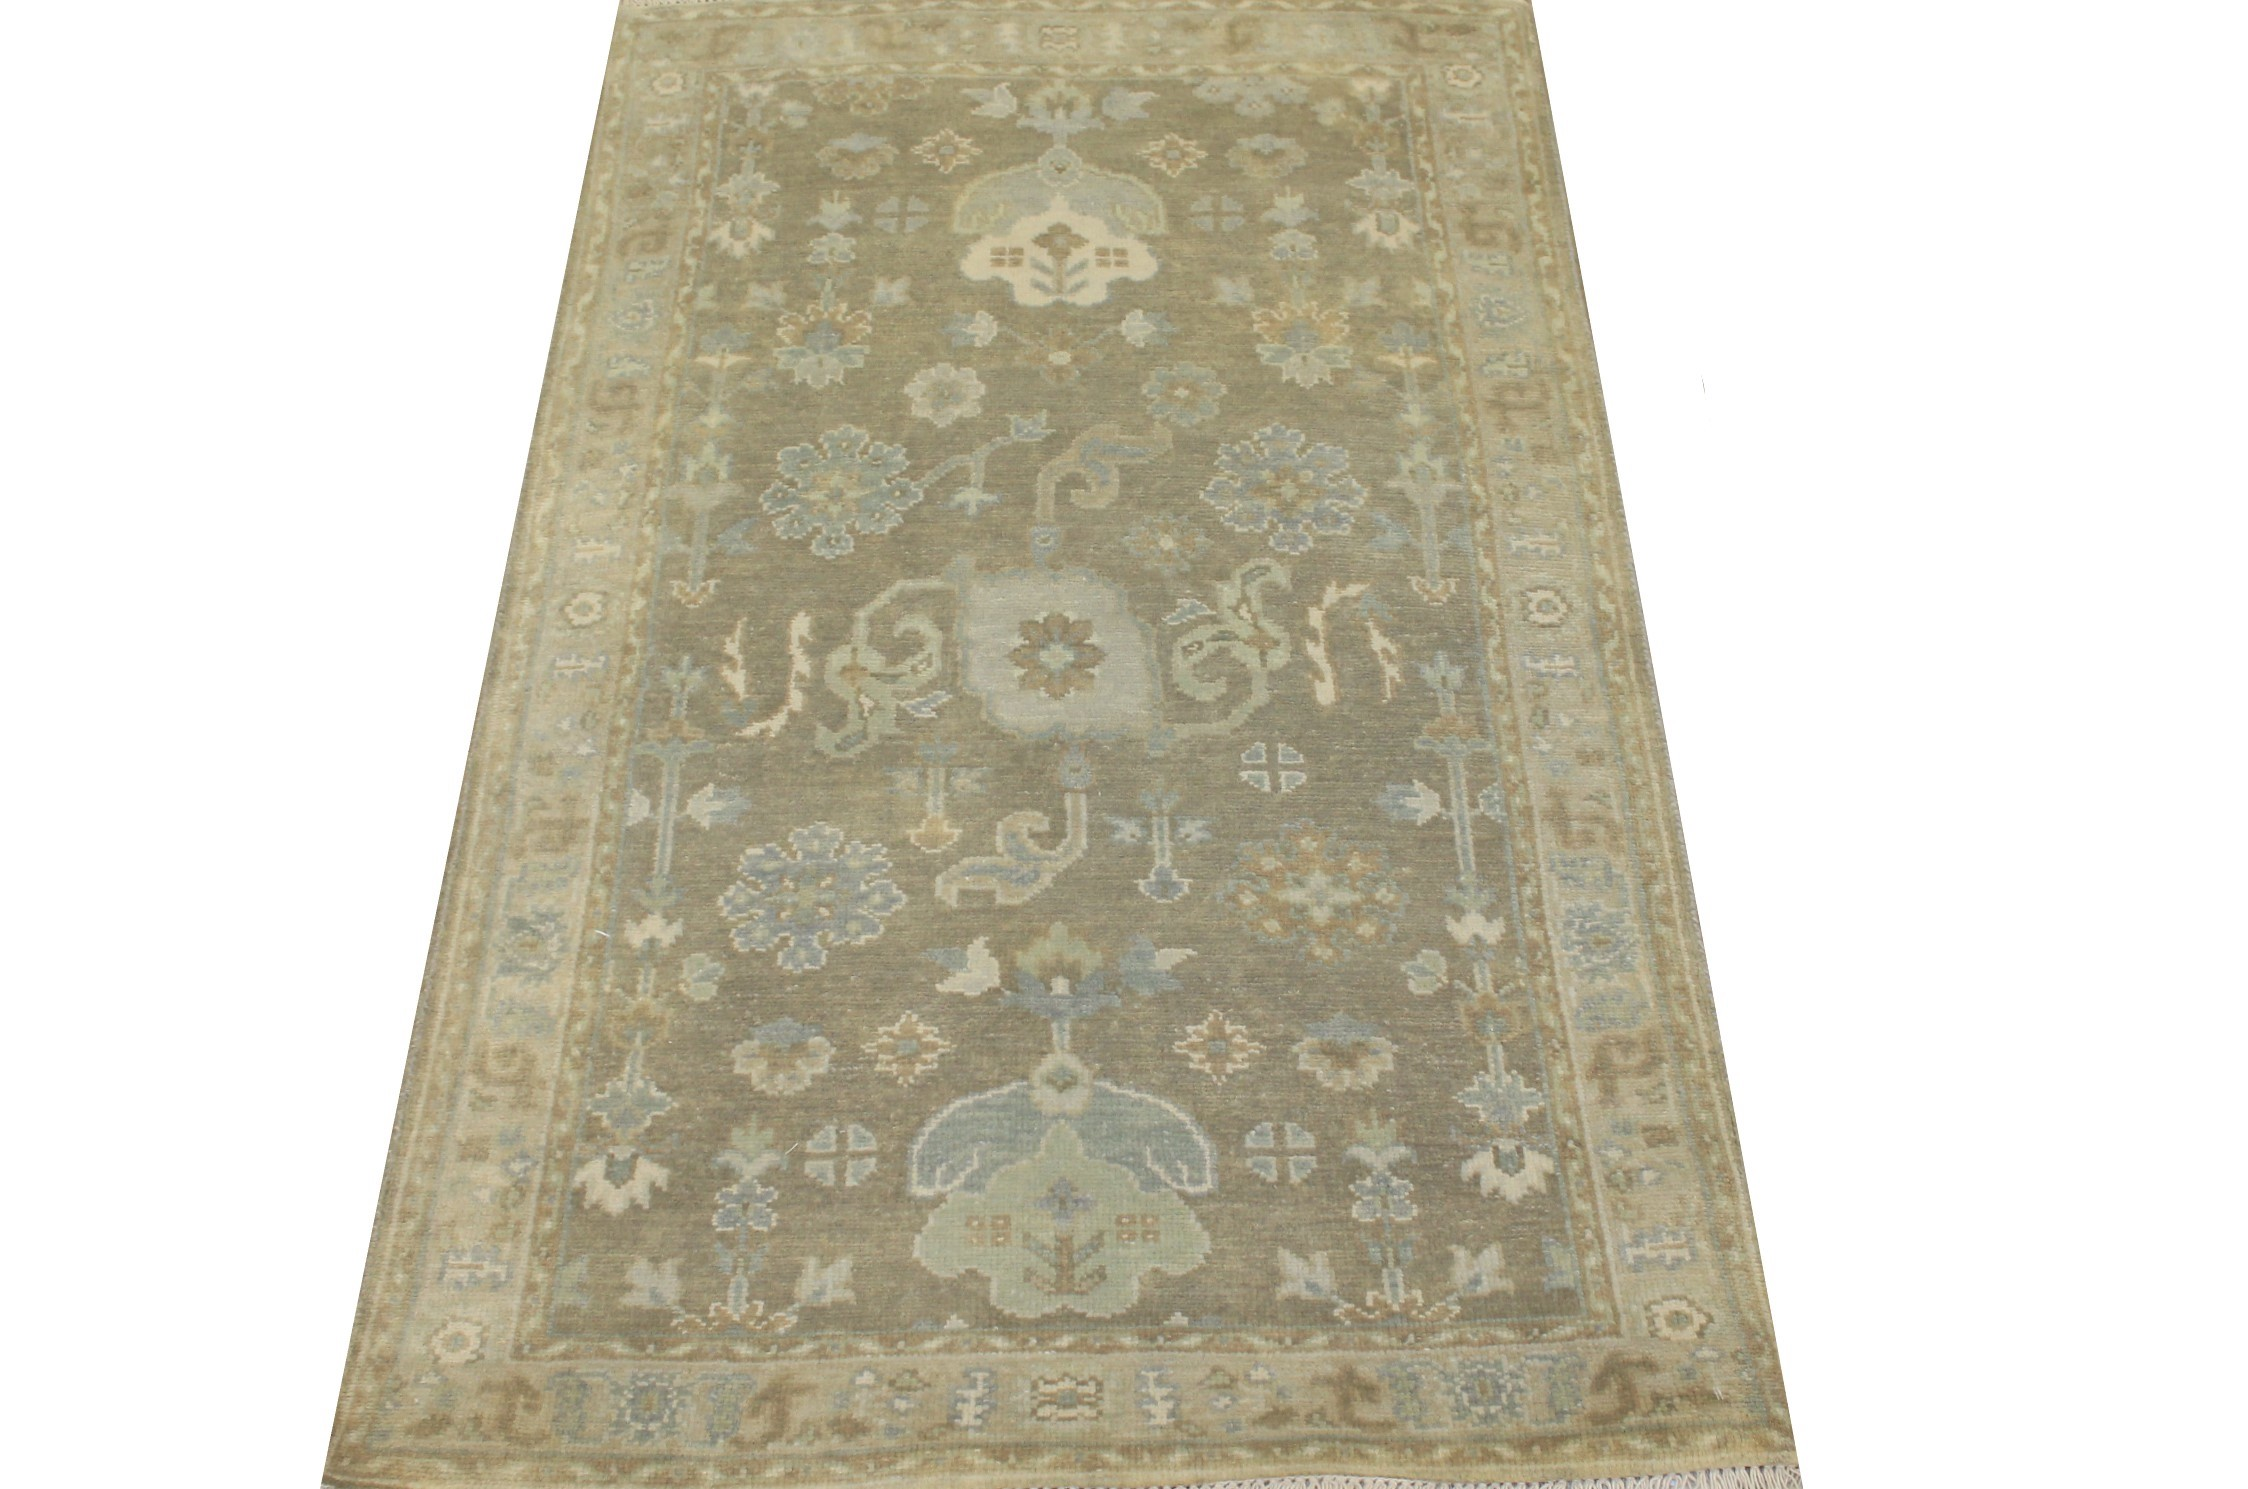 3x5 Oushak Hand Knotted Wool Area Rug - MR024304